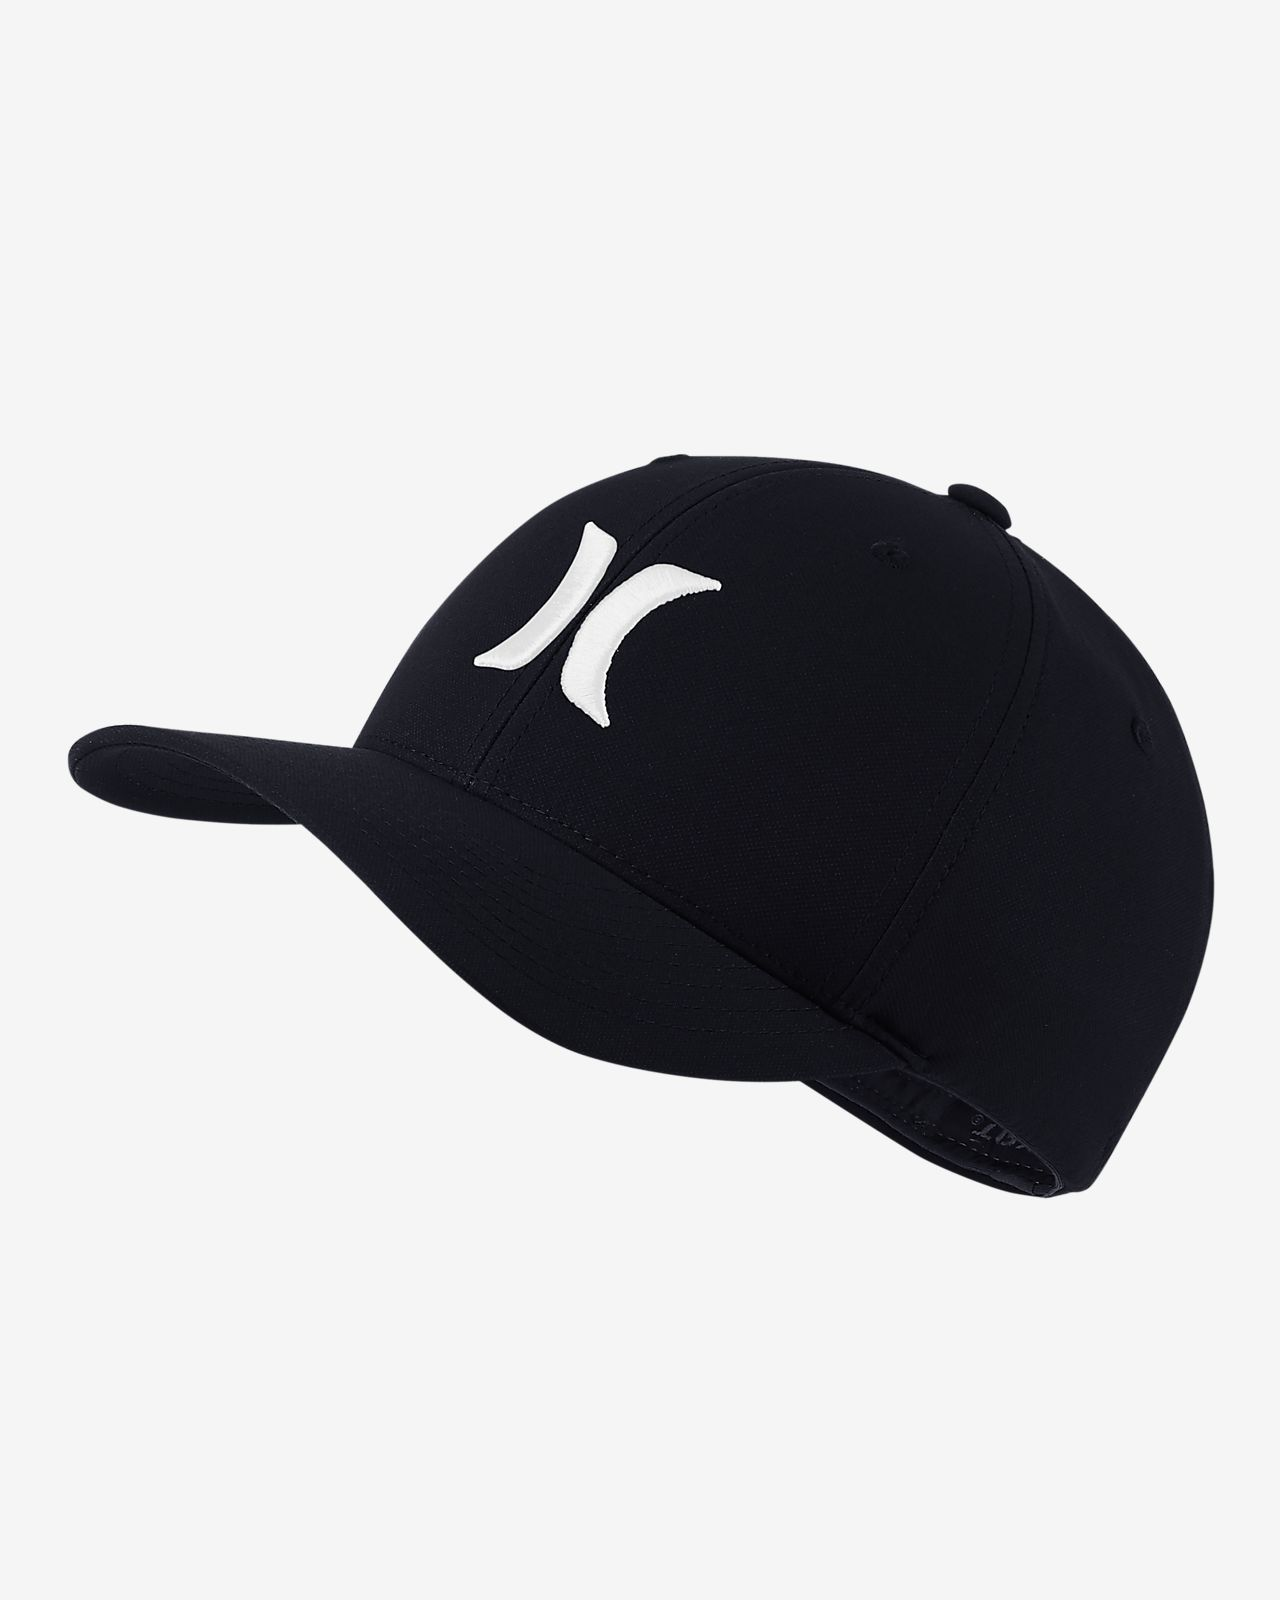 Casquette réglable mixte Hurley Dri-FIT One And Only